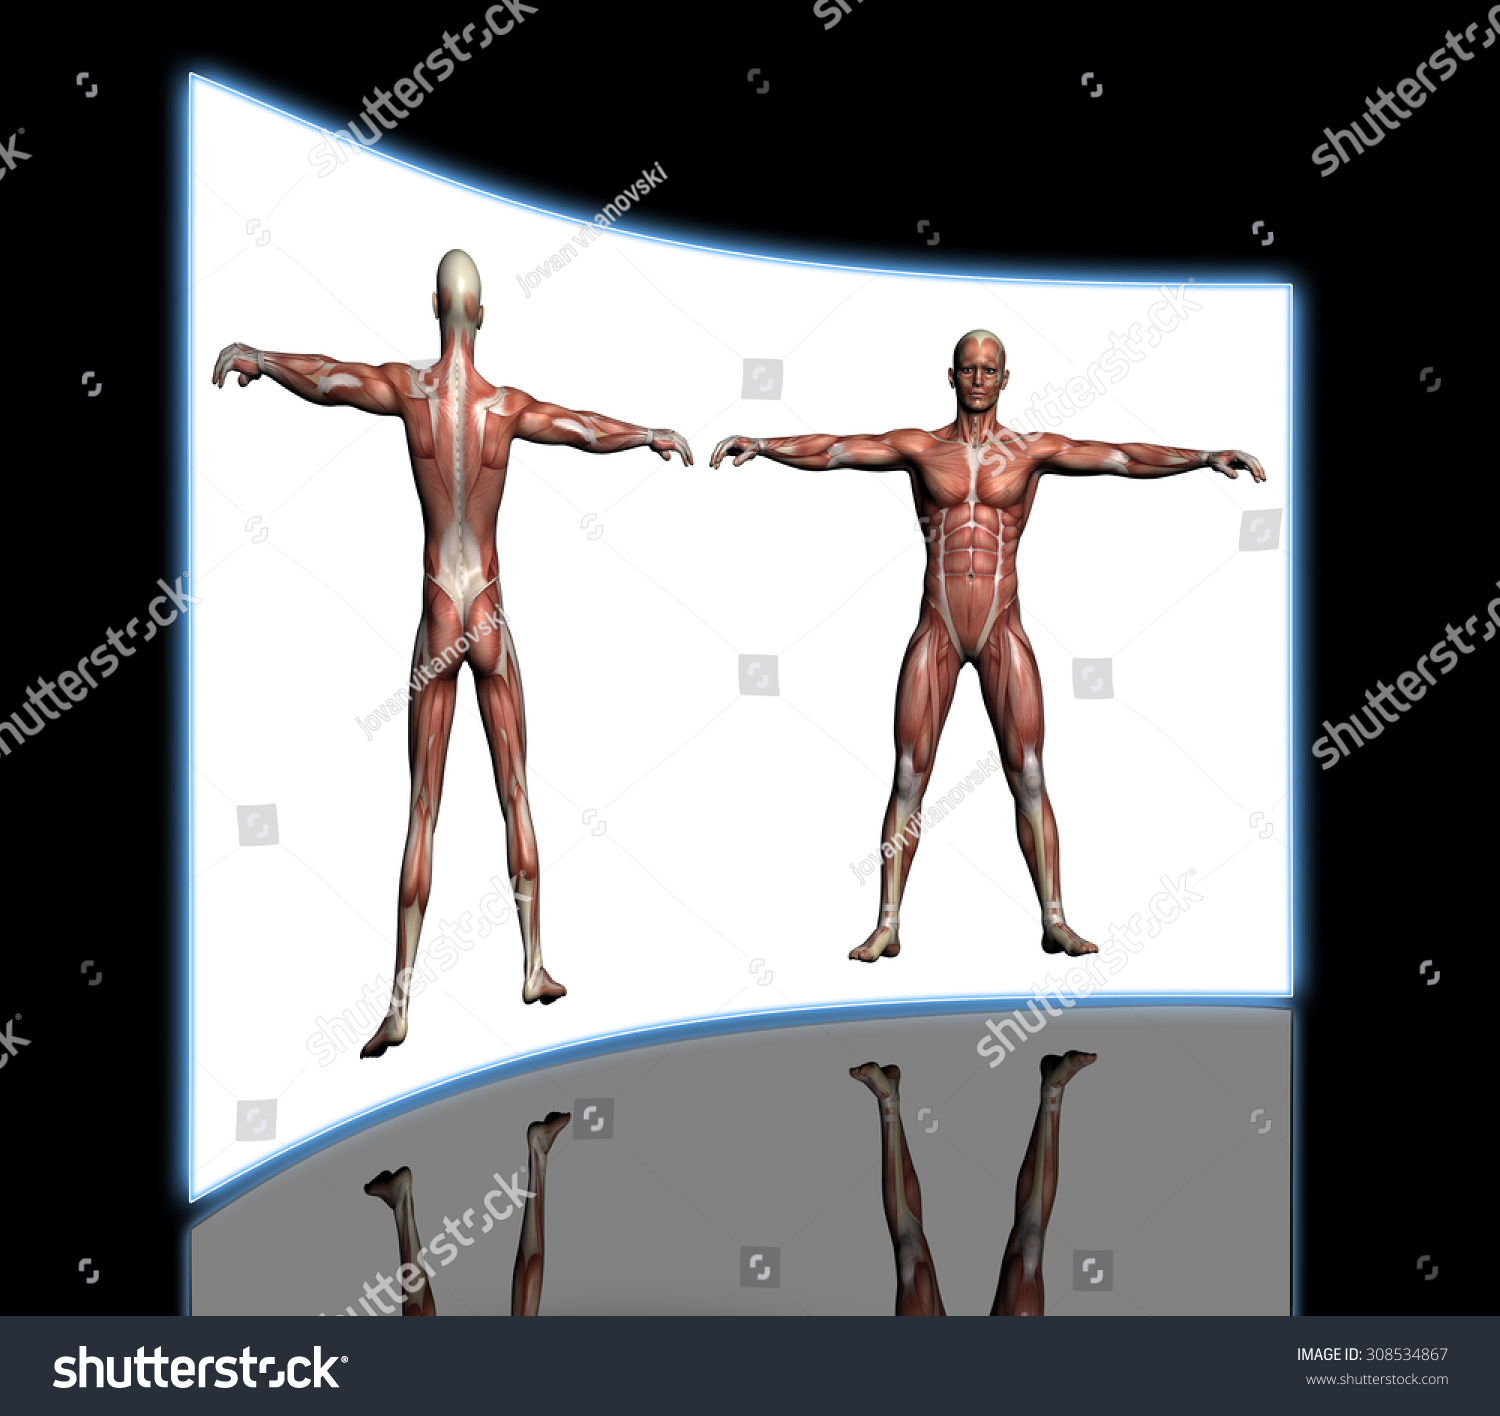 Human Anatomy Male Muscles Made 3 D Stock Illustration 308534867 ...